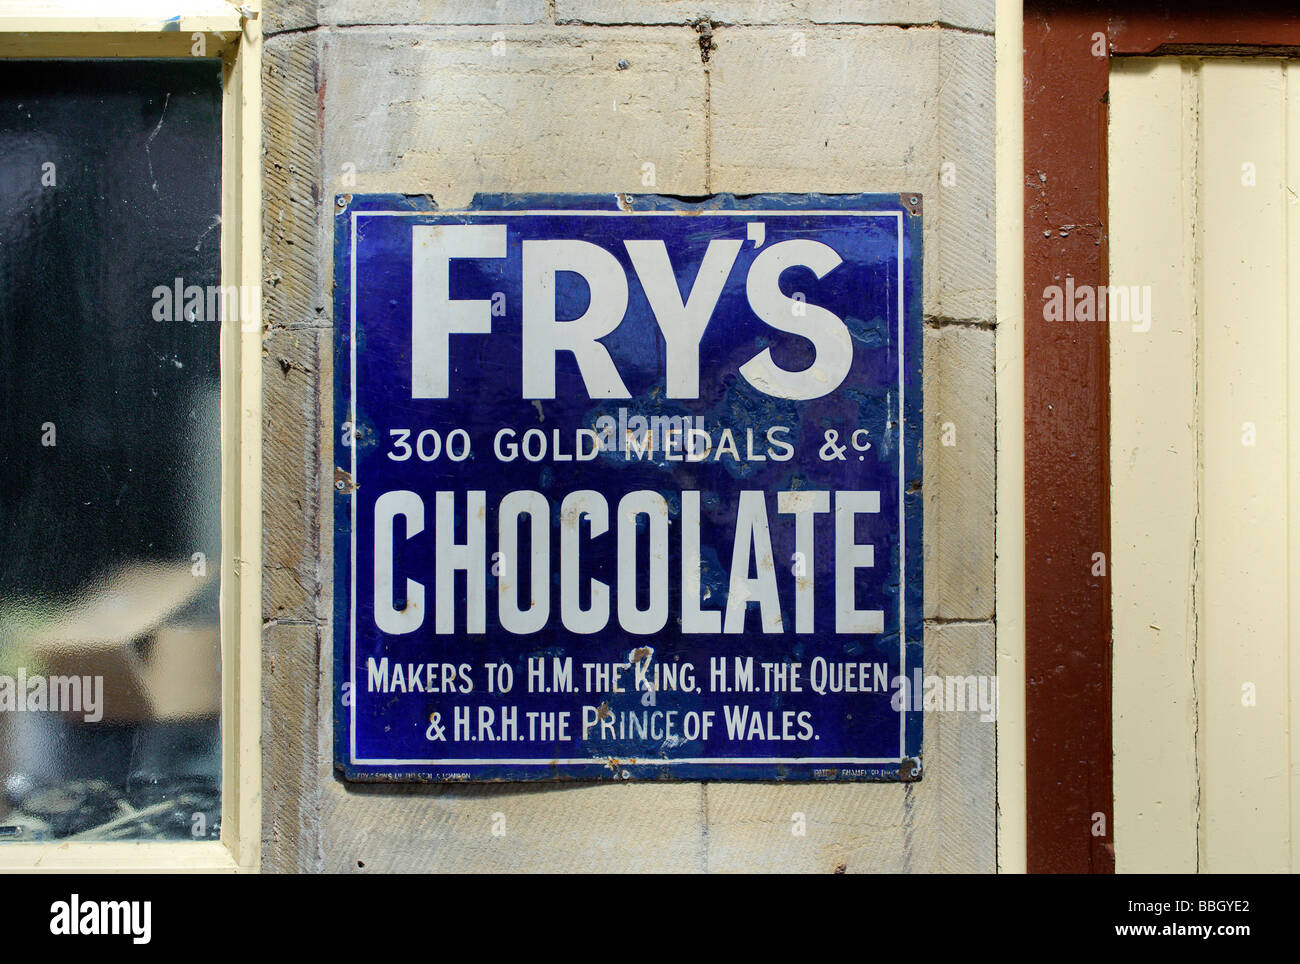 Old advertising sign for Frys Chocolate - Stock Image